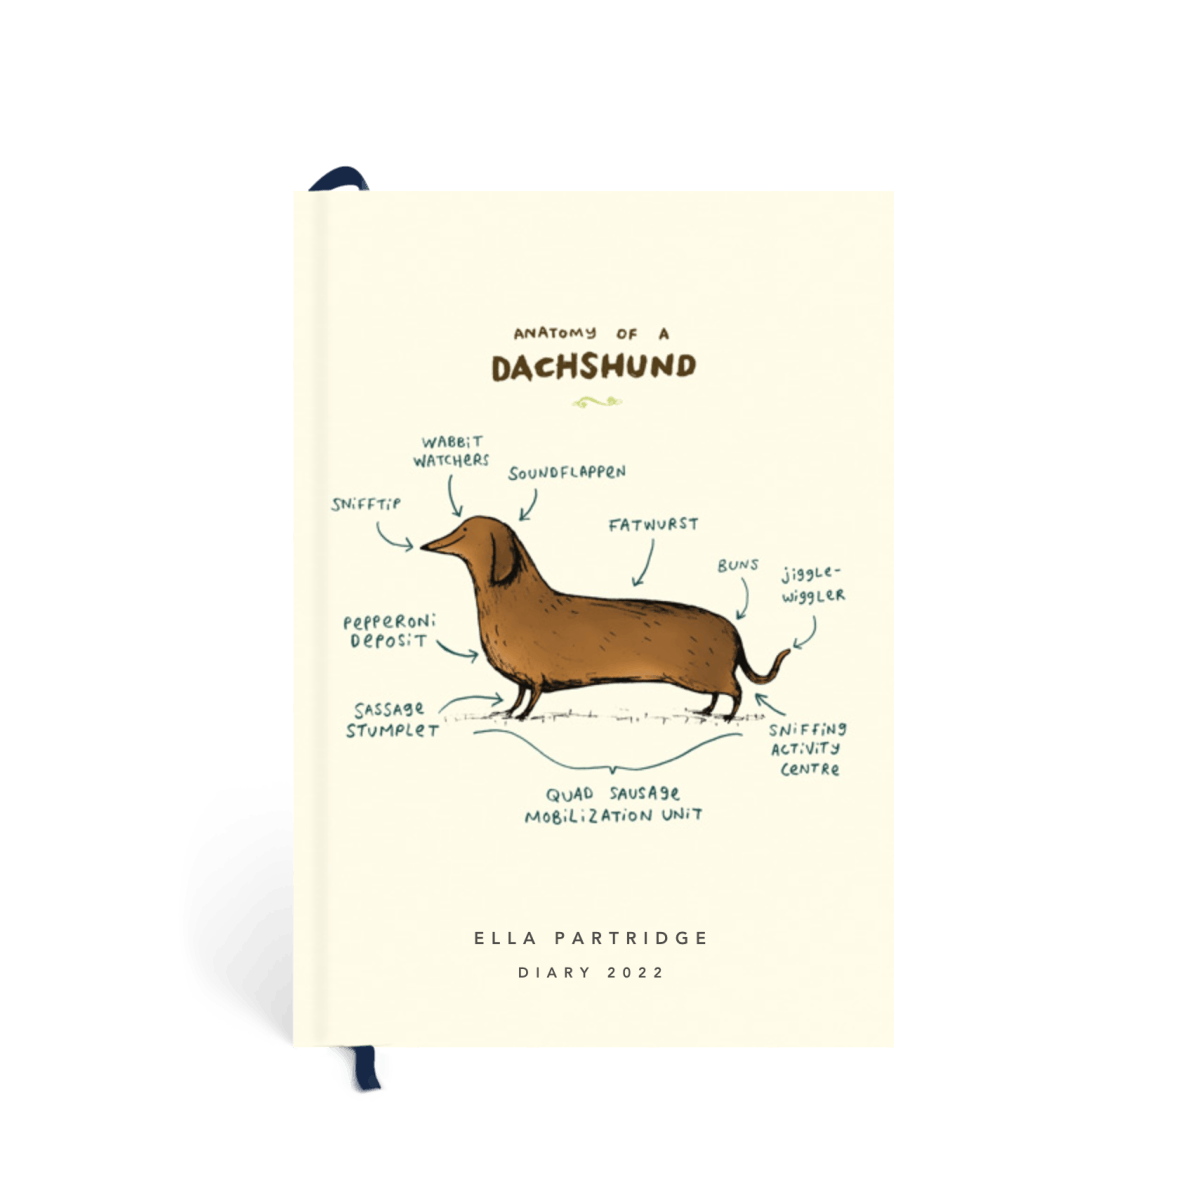 Https%3a%2f%2fwww.papier.com%2fproduct image%2f89761%2f36%2fanatomy of a dachshund 22475 front 1569851646.png?ixlib=rb 1.1